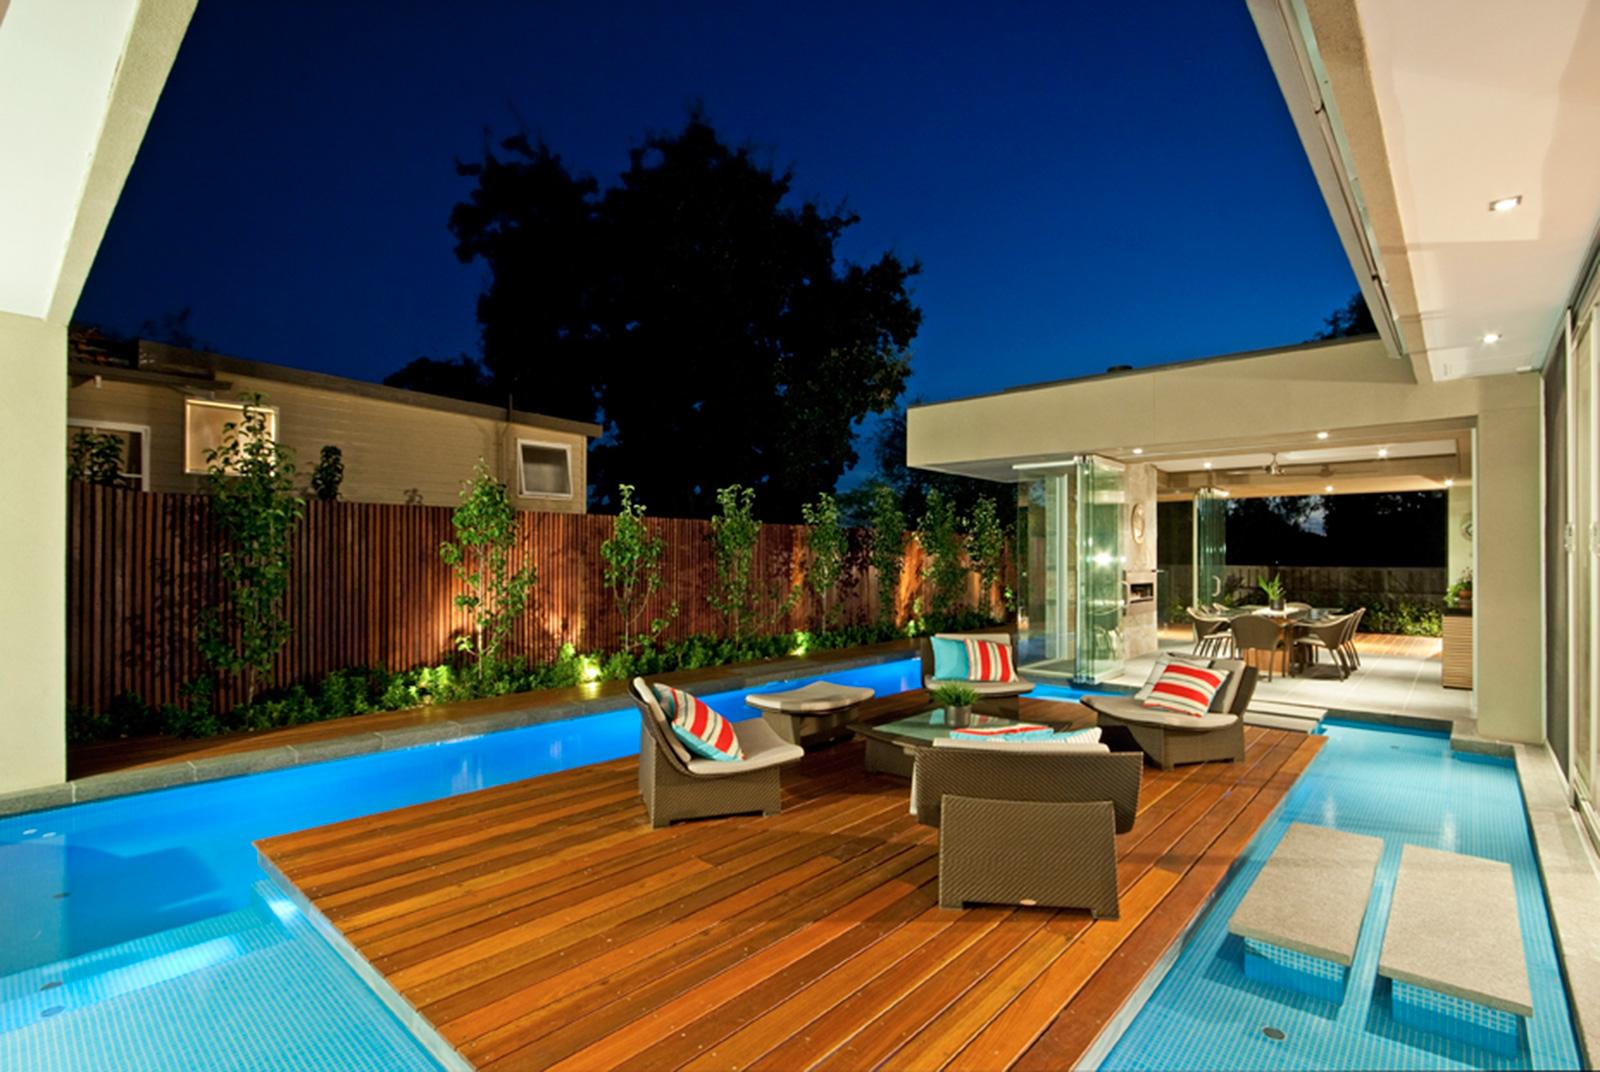 Modernization of swimming pool designs for homes and for Pool decor design